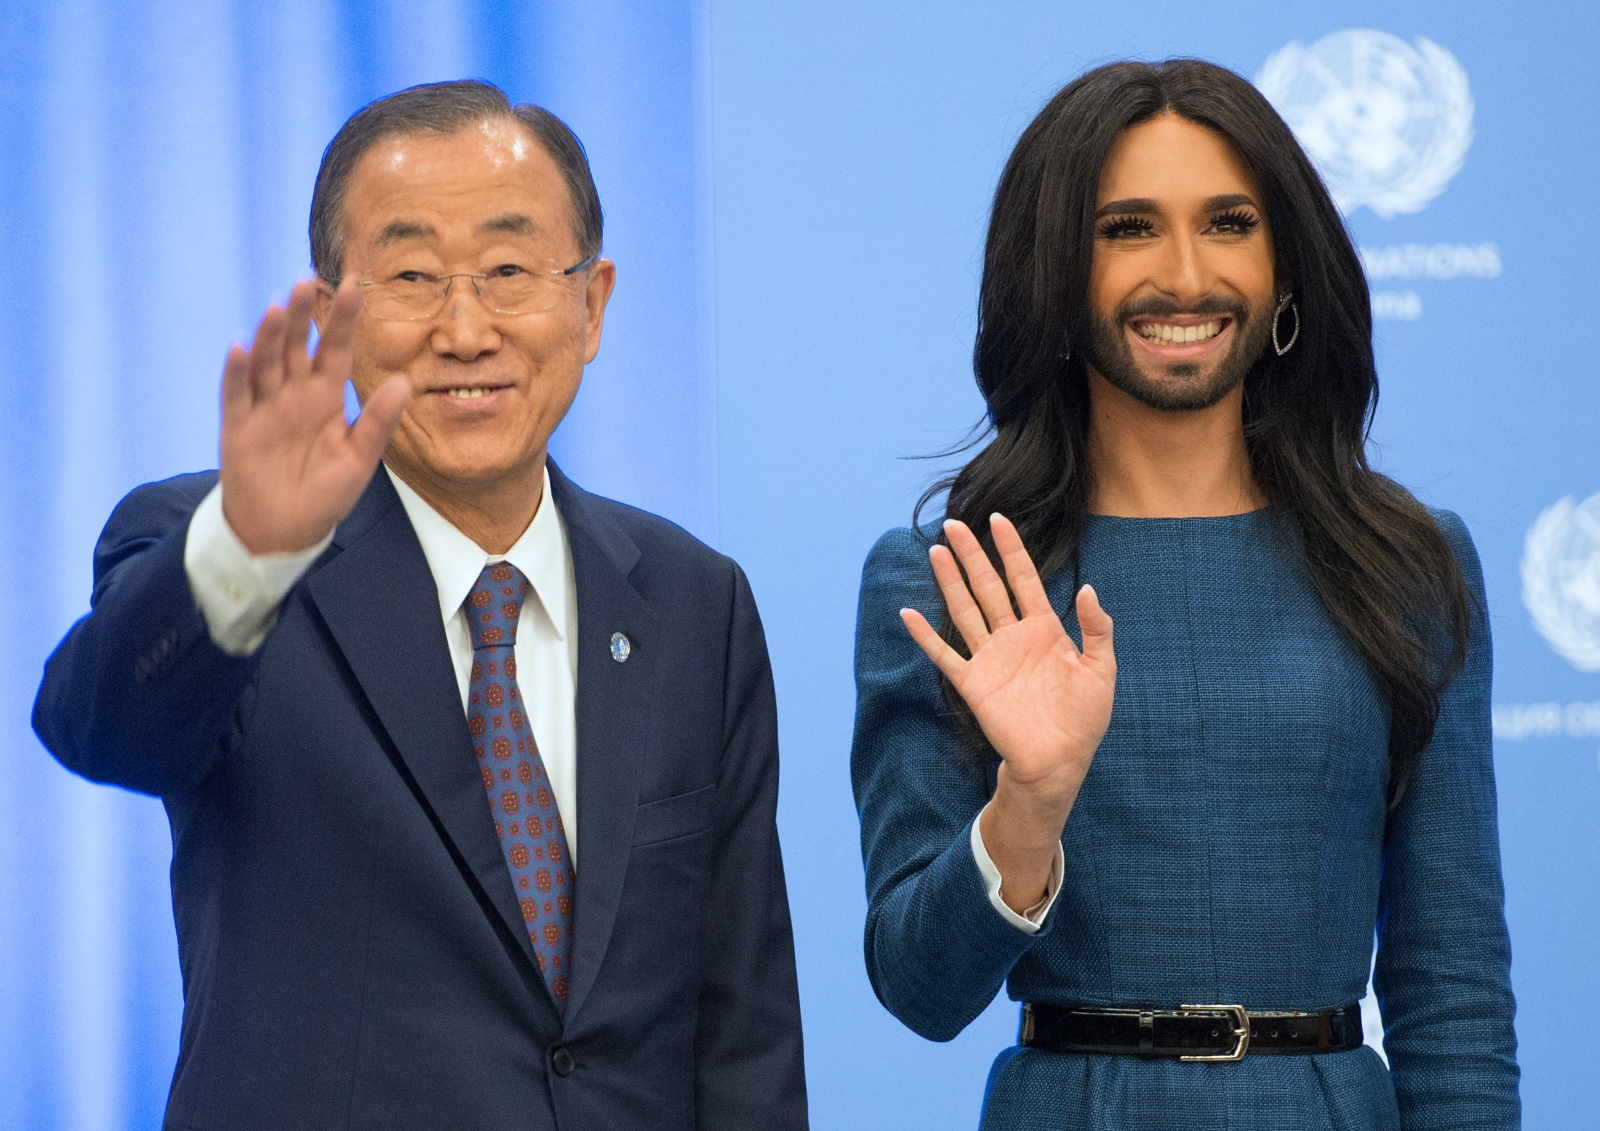 Ban ki Moon and Conchita Wurst